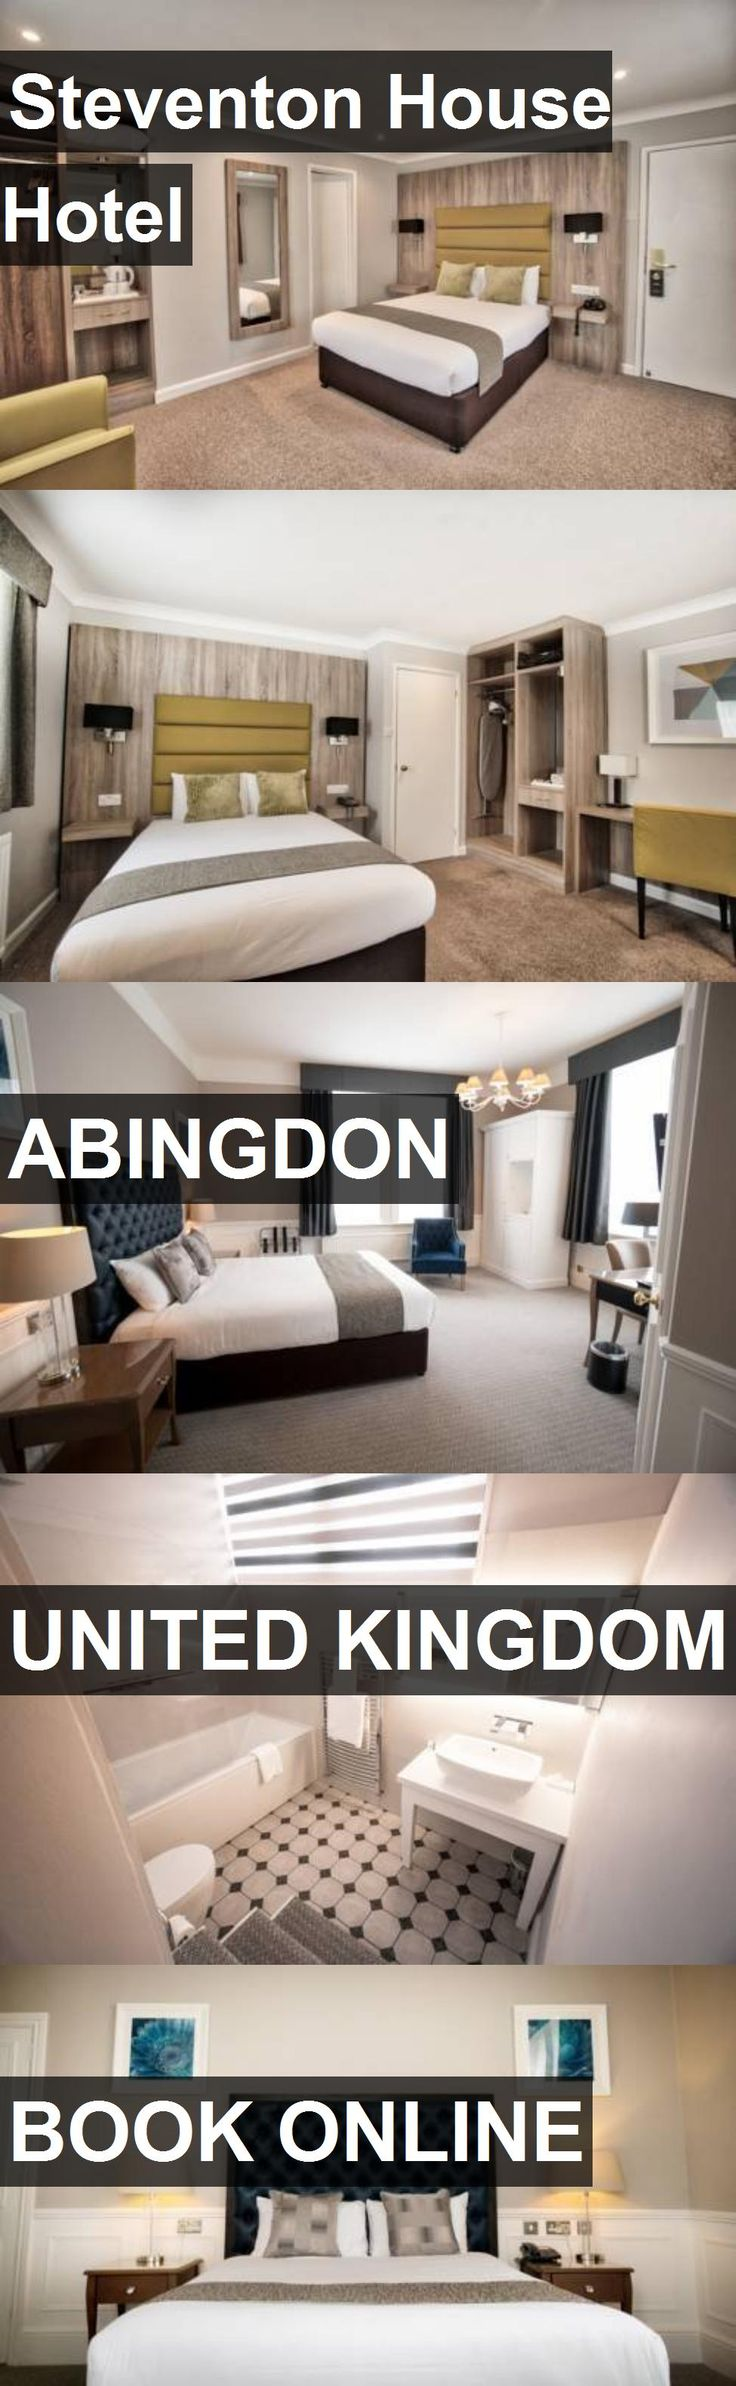 Hotel Steventon House Hotel in Abingdon, United Kingdom. For more information, photos, reviews and best prices please follow the link. #UnitedKingdom #Abingdon #hotel #travel #vacation